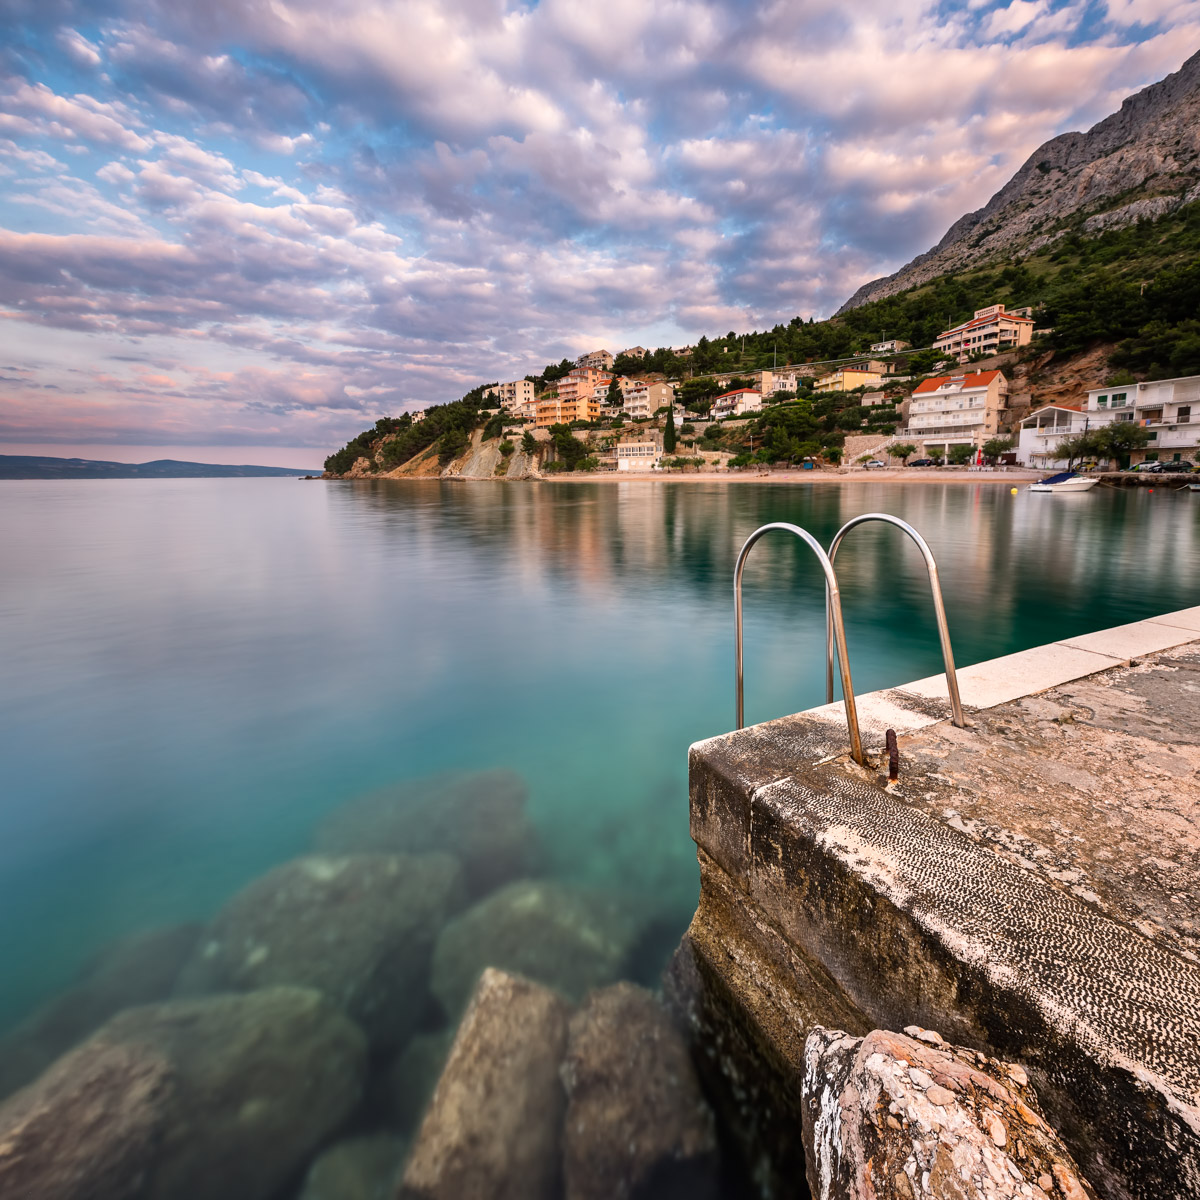 Stone Jetty in Mimice Village, Croatia